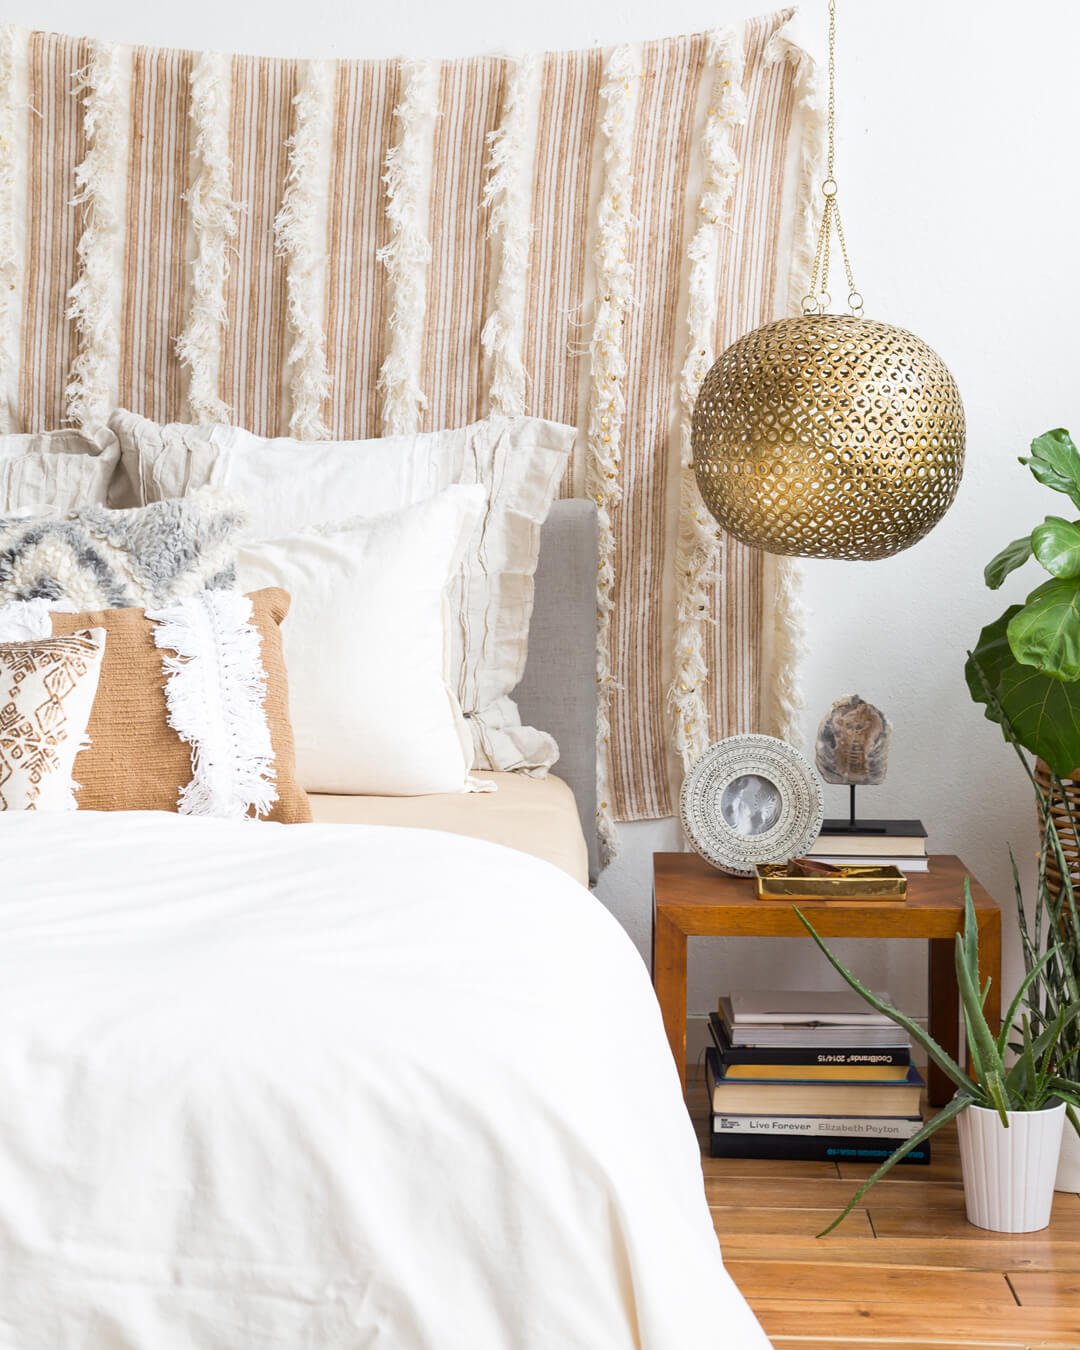 Emily_Henderson_1_Bed_Styling_02